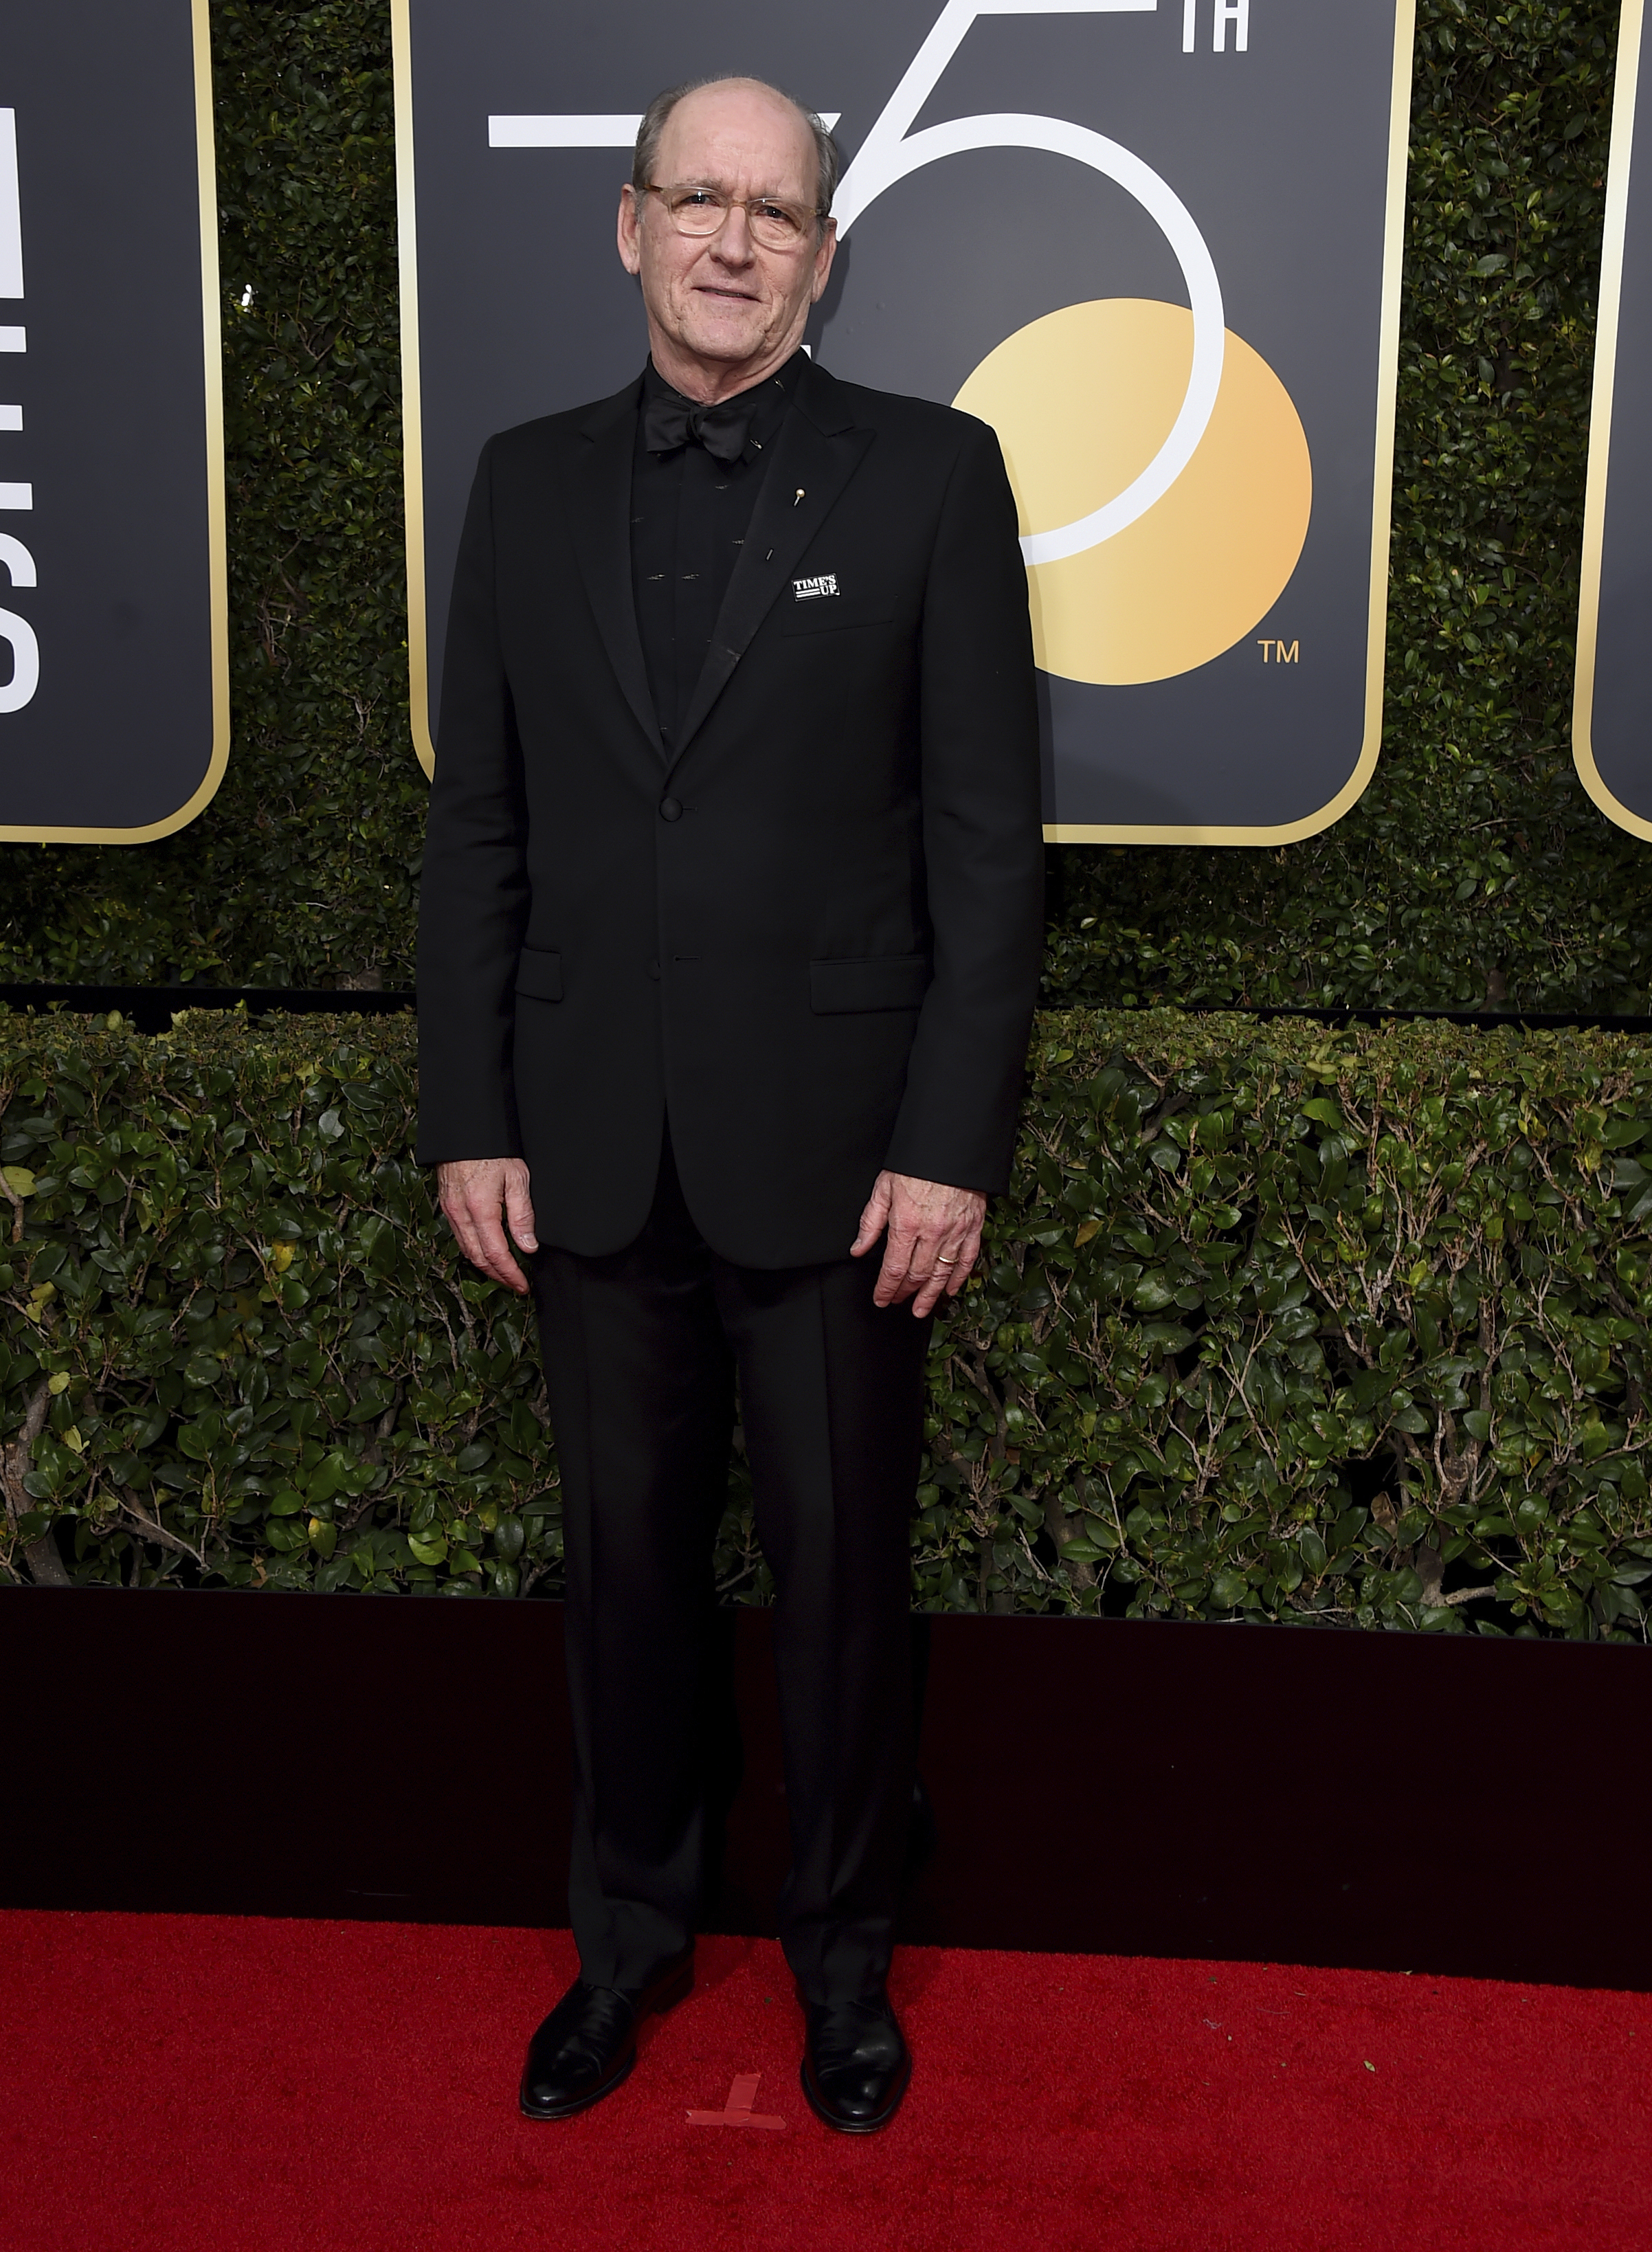 <div class='meta'><div class='origin-logo' data-origin='AP'></div><span class='caption-text' data-credit='Jordan Strauss/Invision/AP'>Richard Jenkins arrives at the 75th annual Golden Globe Awards at the Beverly Hilton Hotel on Sunday, Jan. 7, 2018, in Beverly Hills, Calif.</span></div>